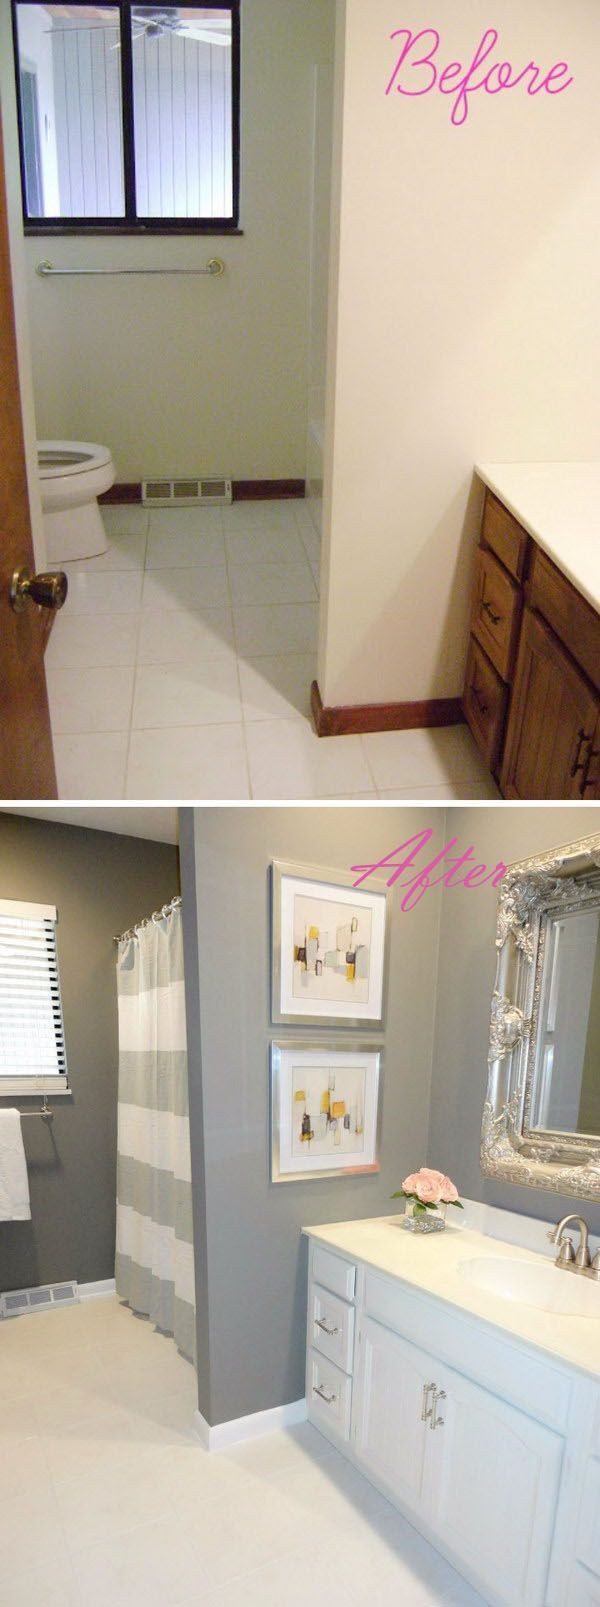 inexpensive bathroom designs. DIY Bathroom Remodel On A Budget. Inexpensive Designs